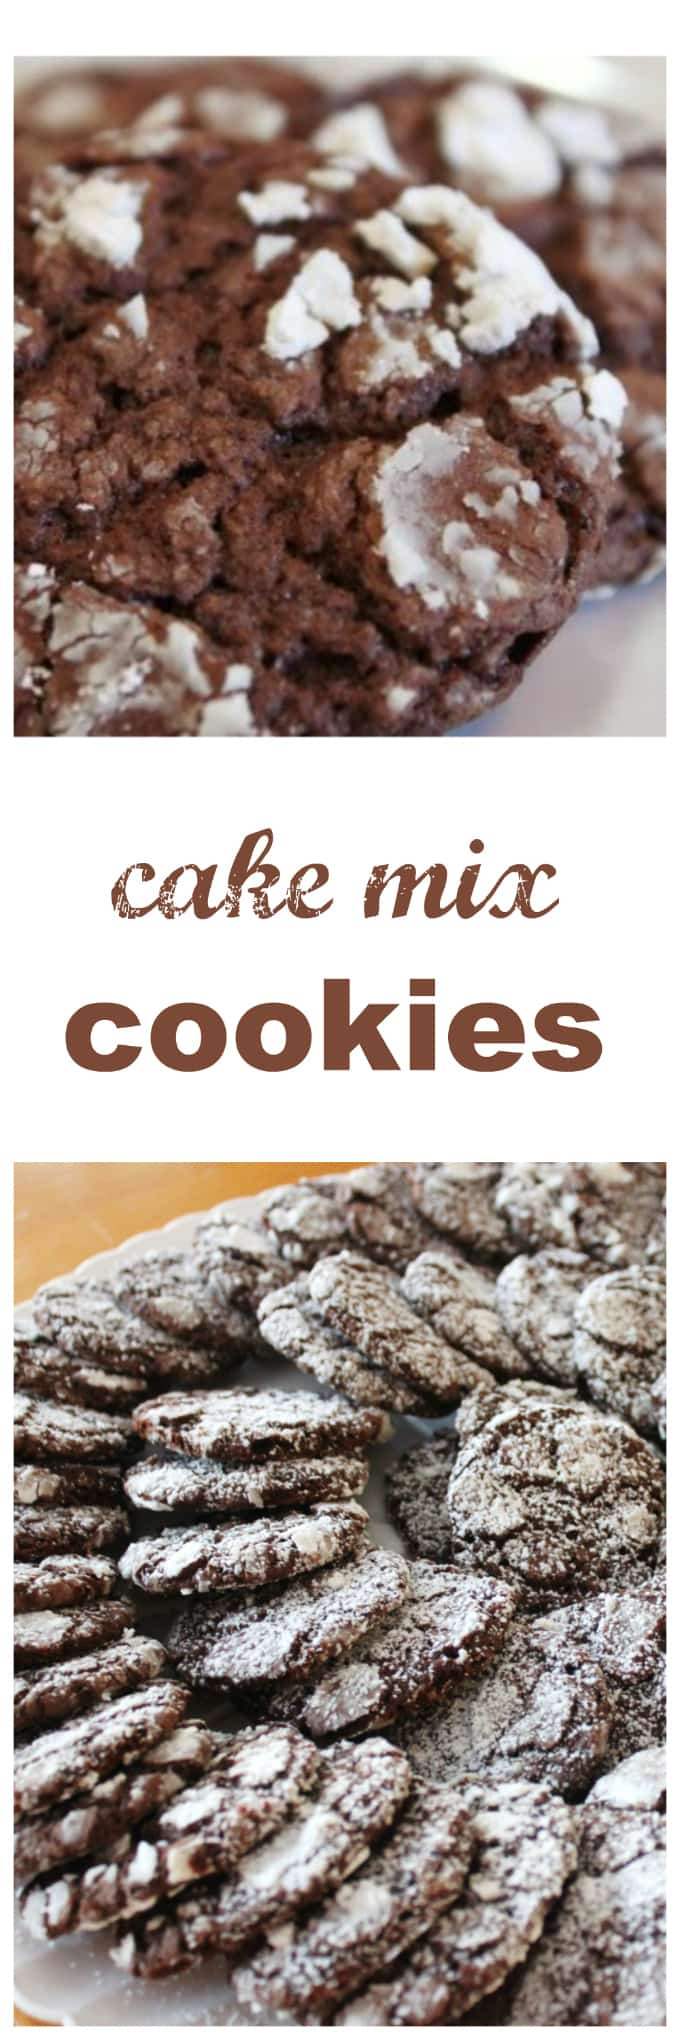 Chocolate Cake Mix Cookies Rolled In Powdered Sugar